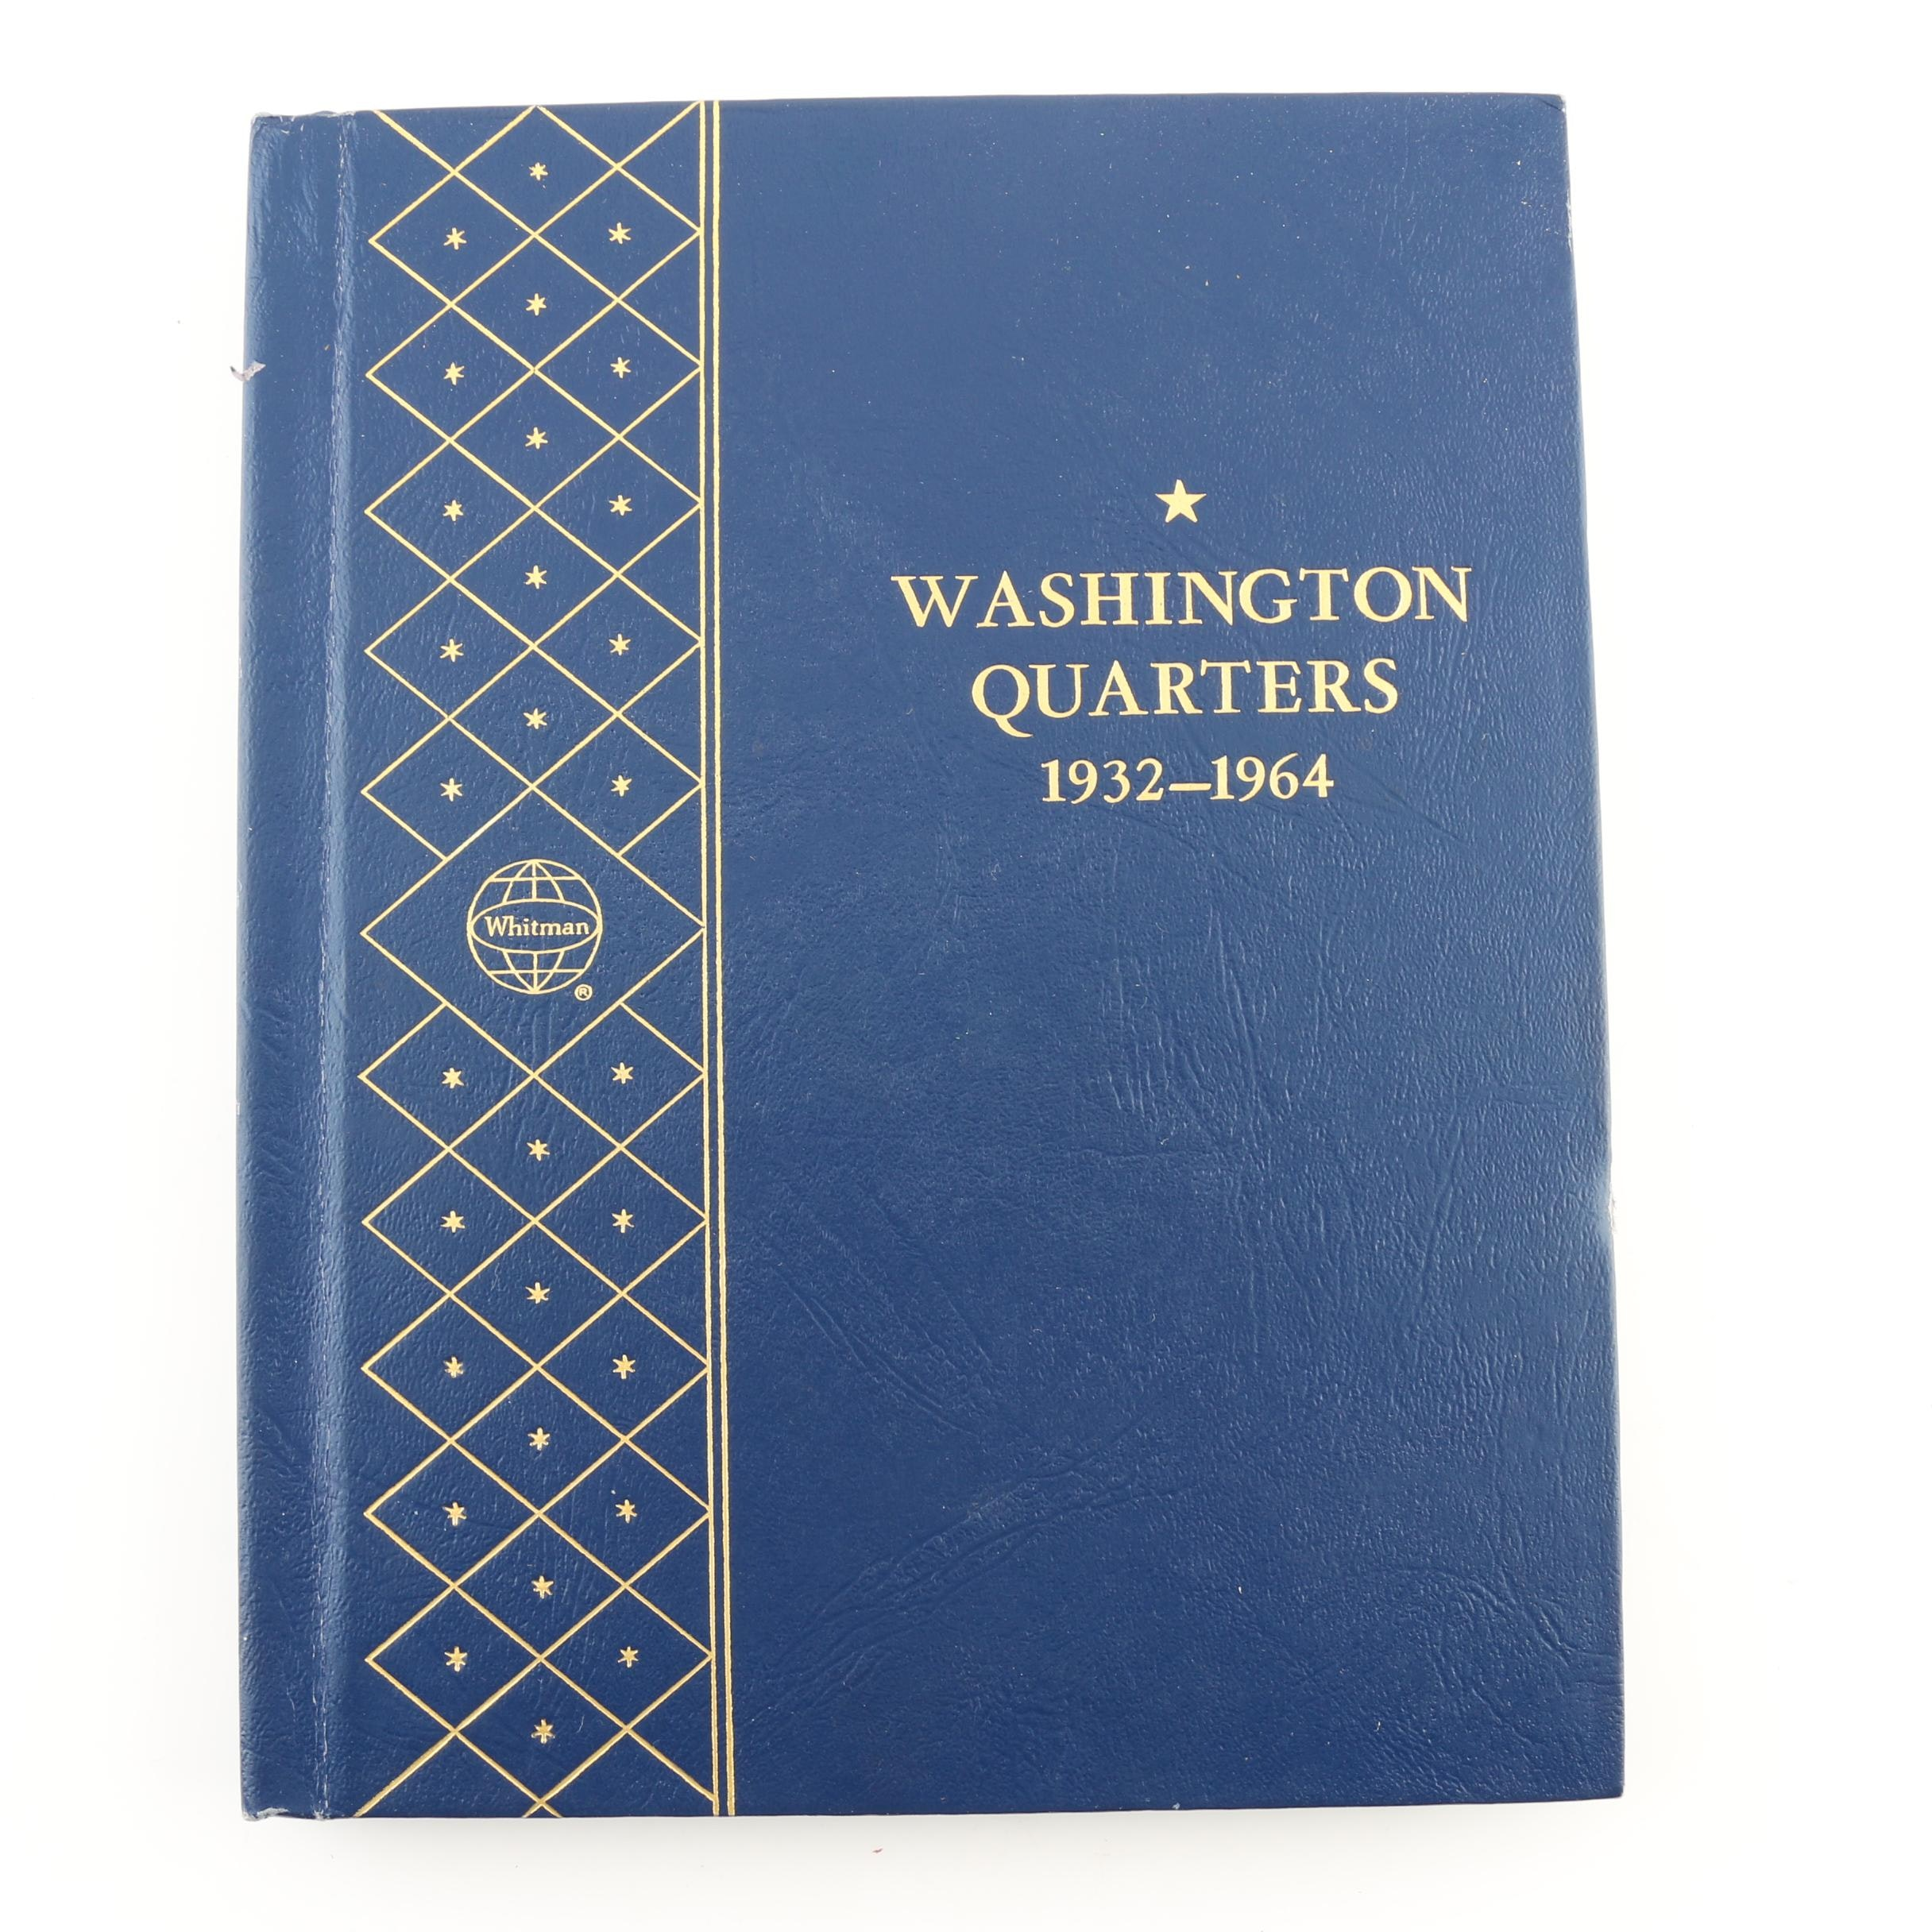 Complete Whitman Binder of Washington Silver Quarters, 1932-1964